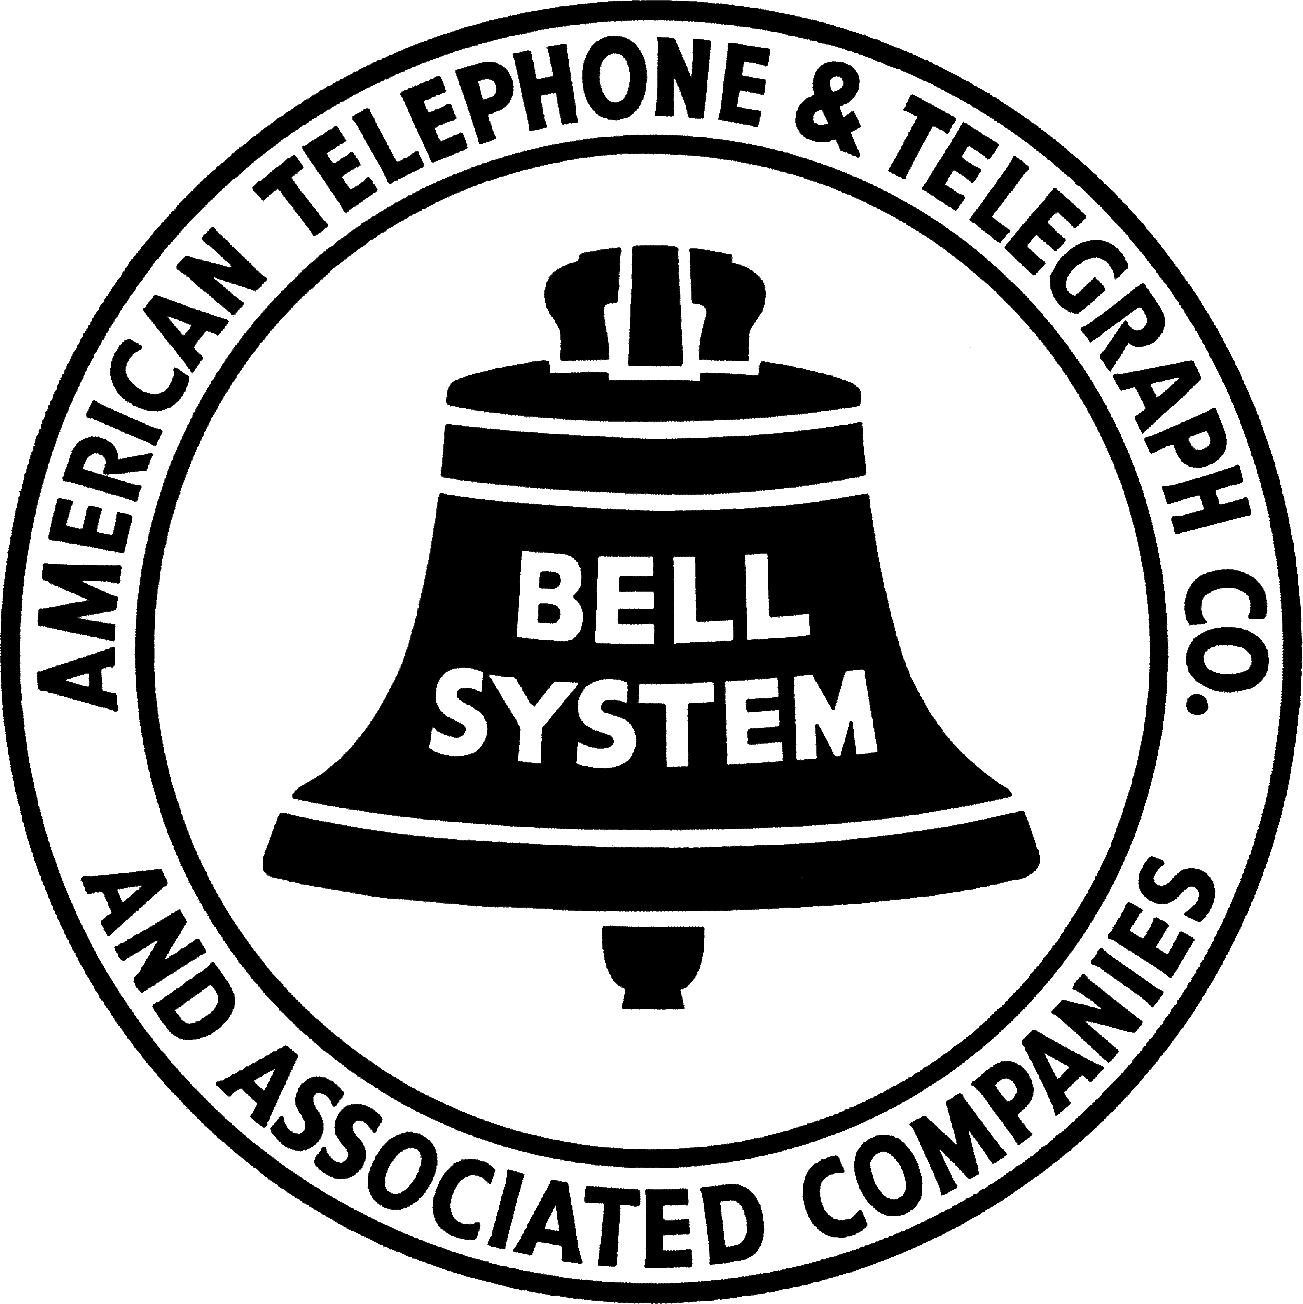 Bell Telephone Company